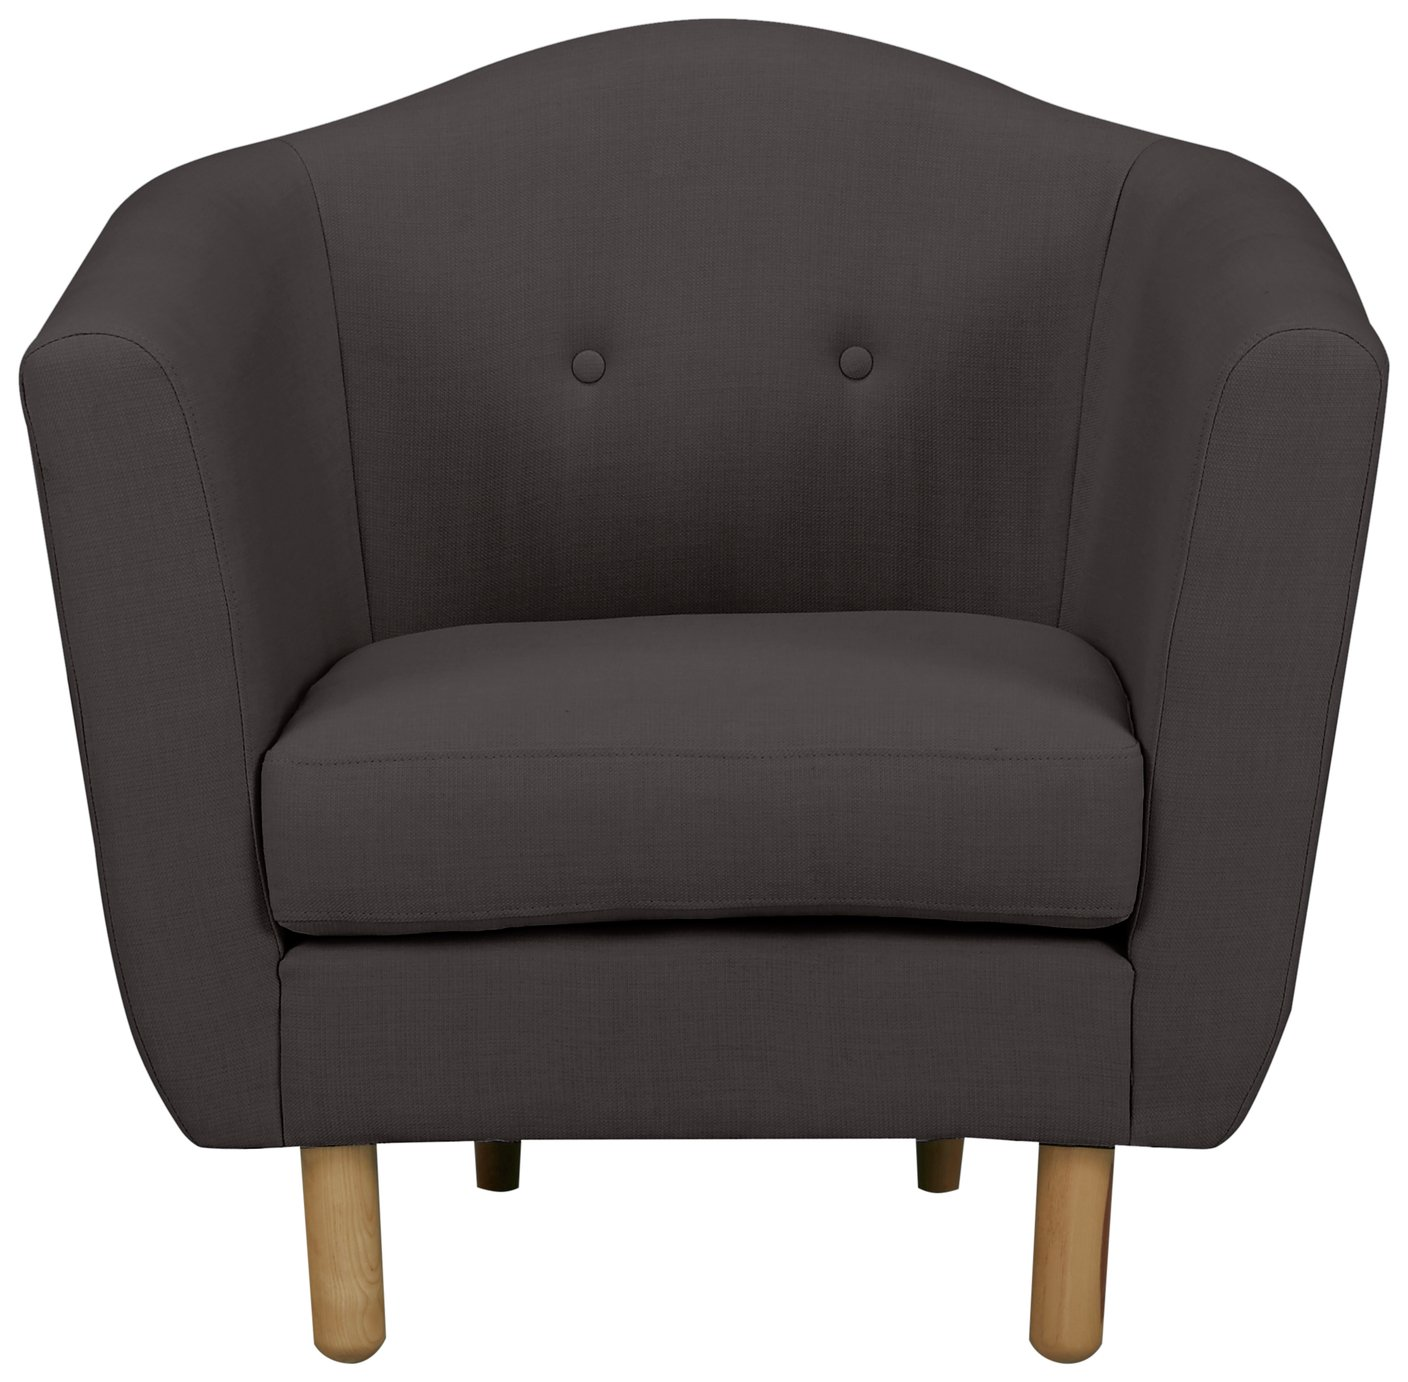 Argos Home Elin Fabric Armchair - Charcoal